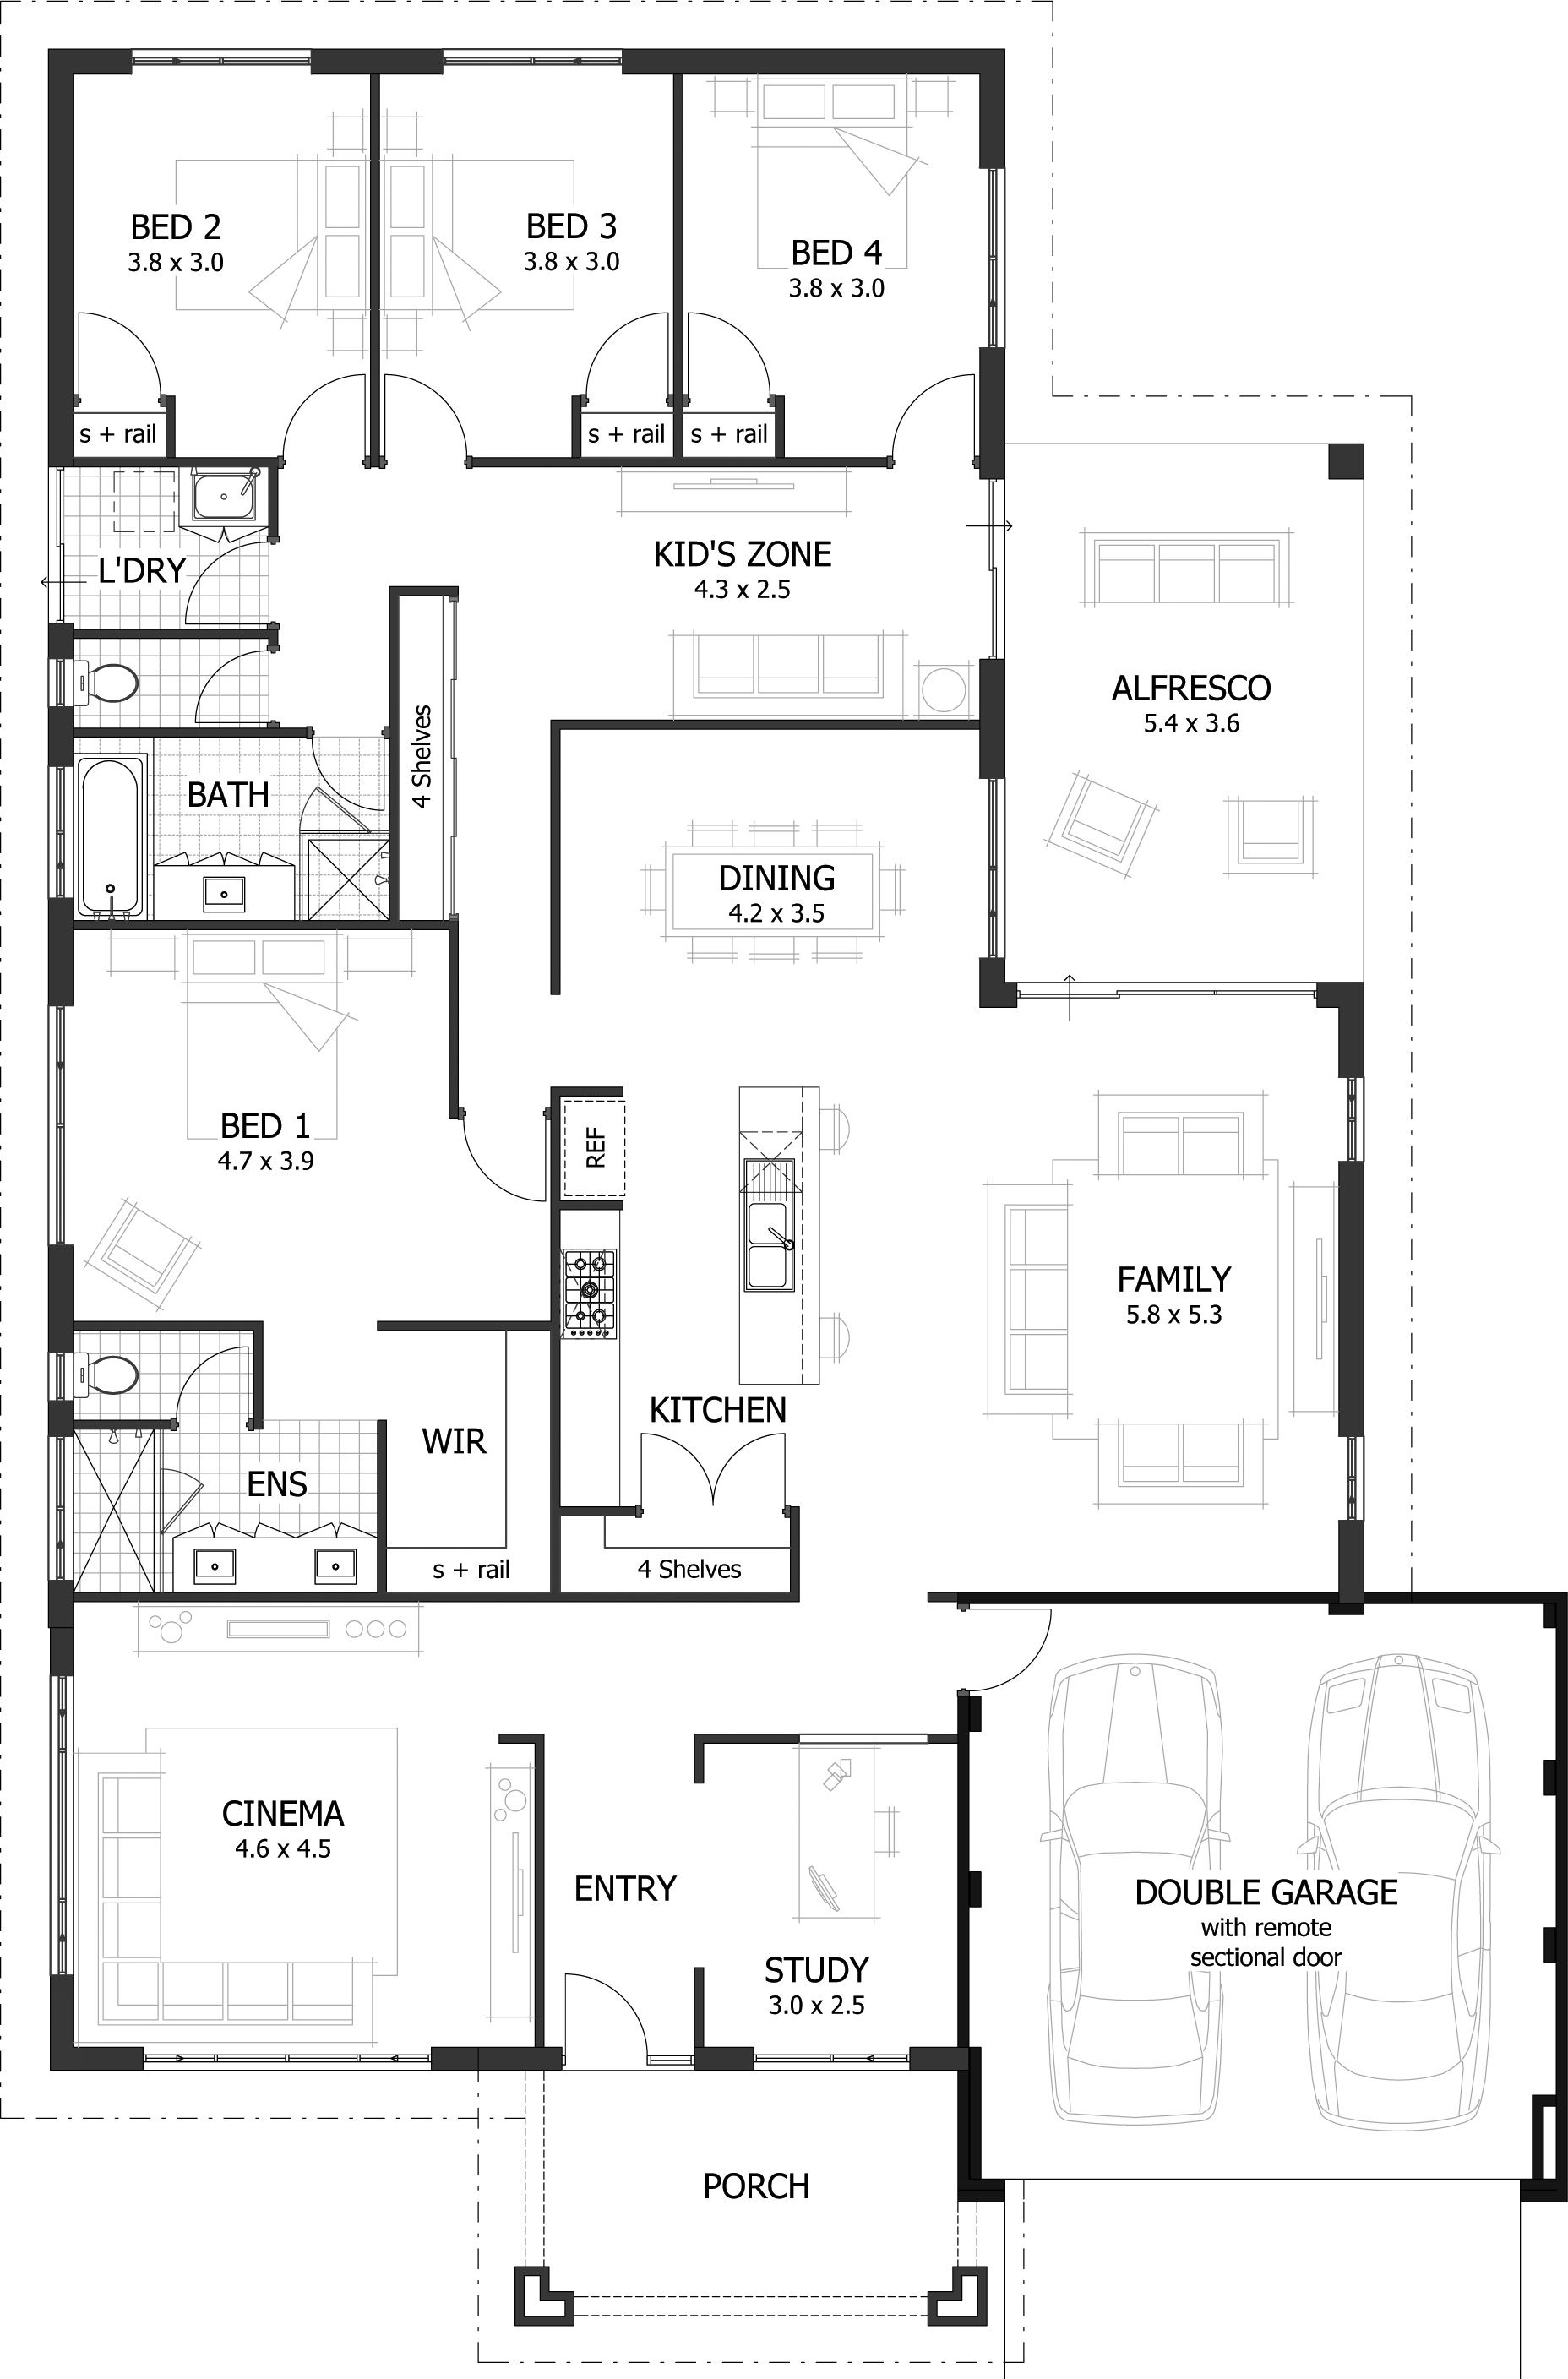 Charming 4 Bedroom House Plans U0026 Home Designs | Celebration Homes